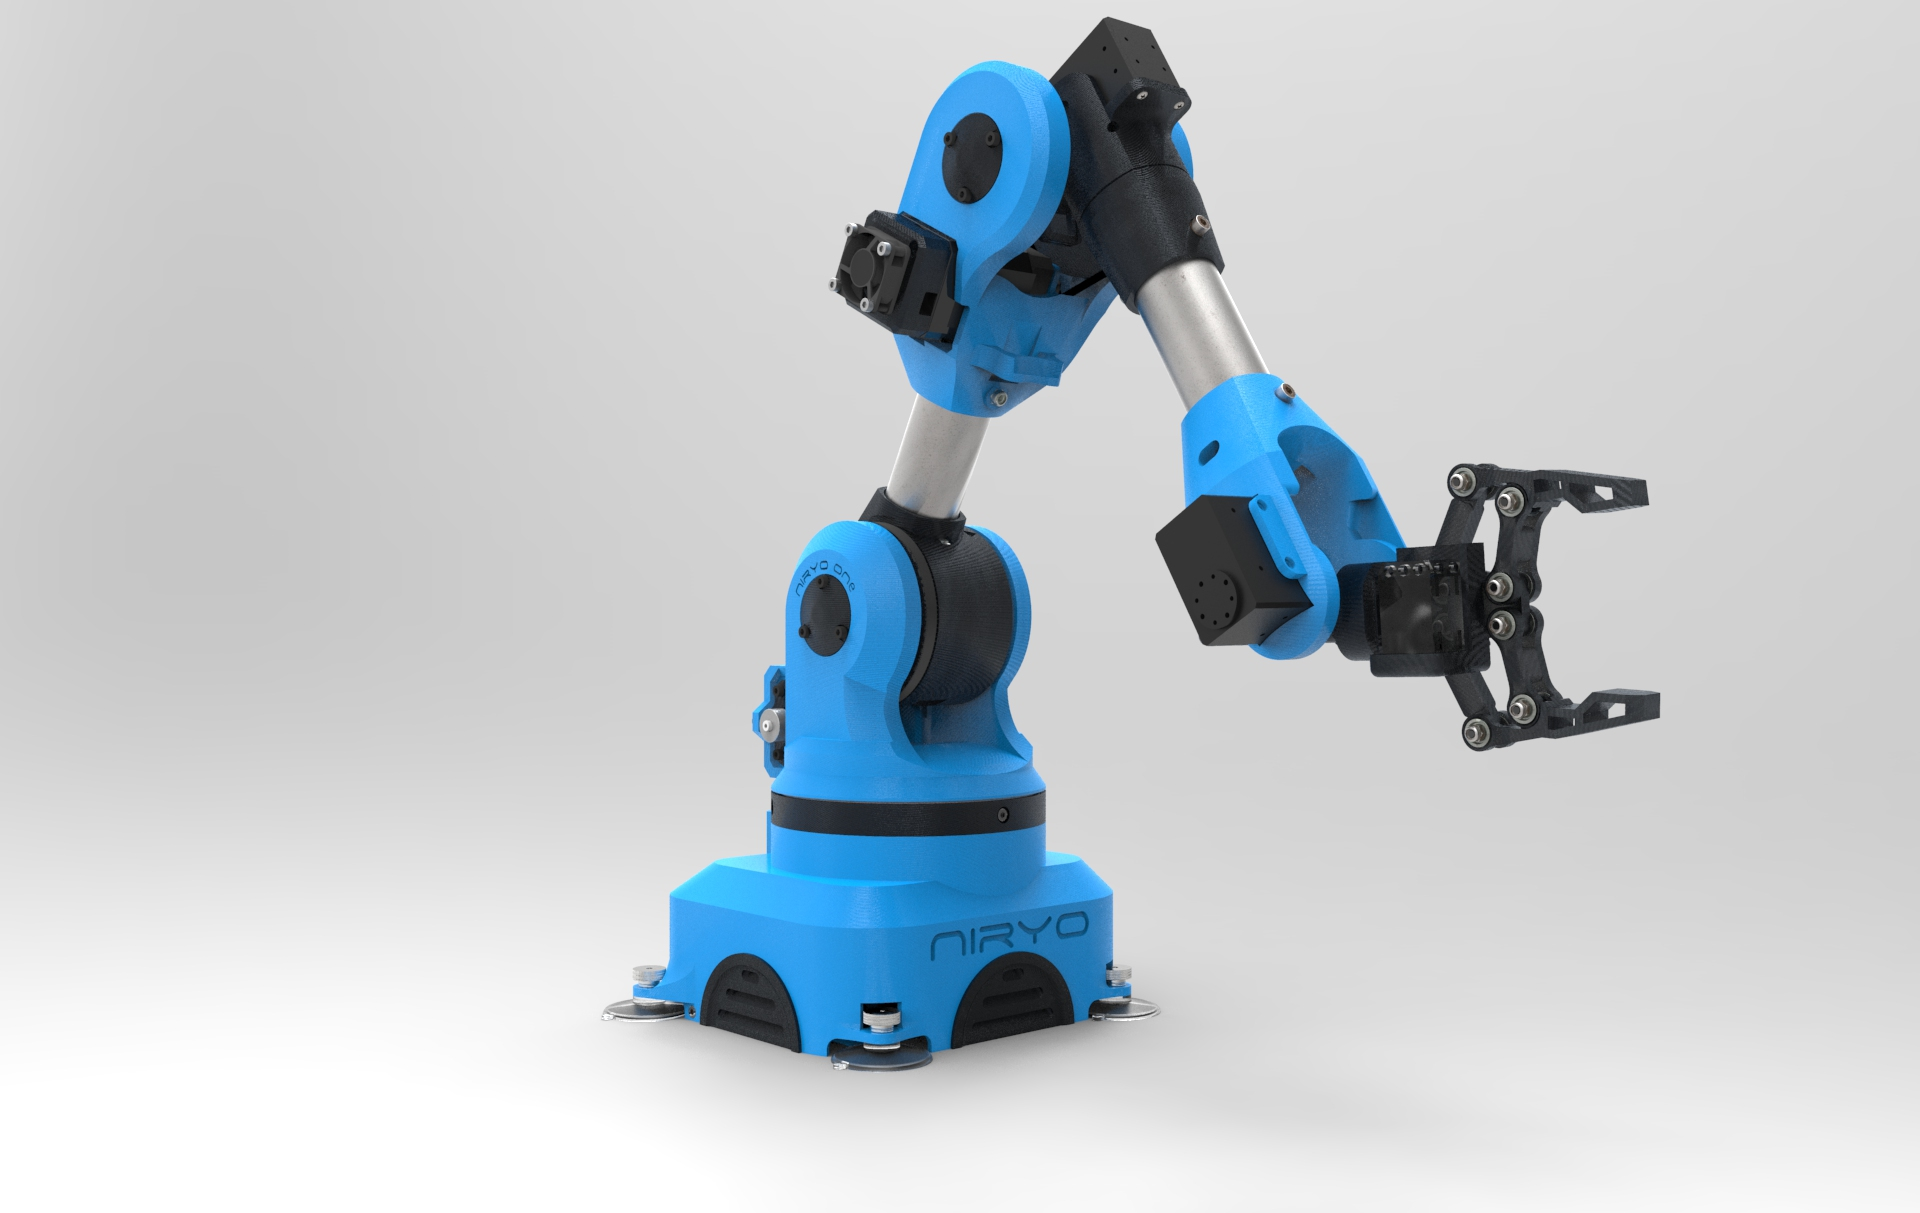 Niryo 6-axis robotic arm